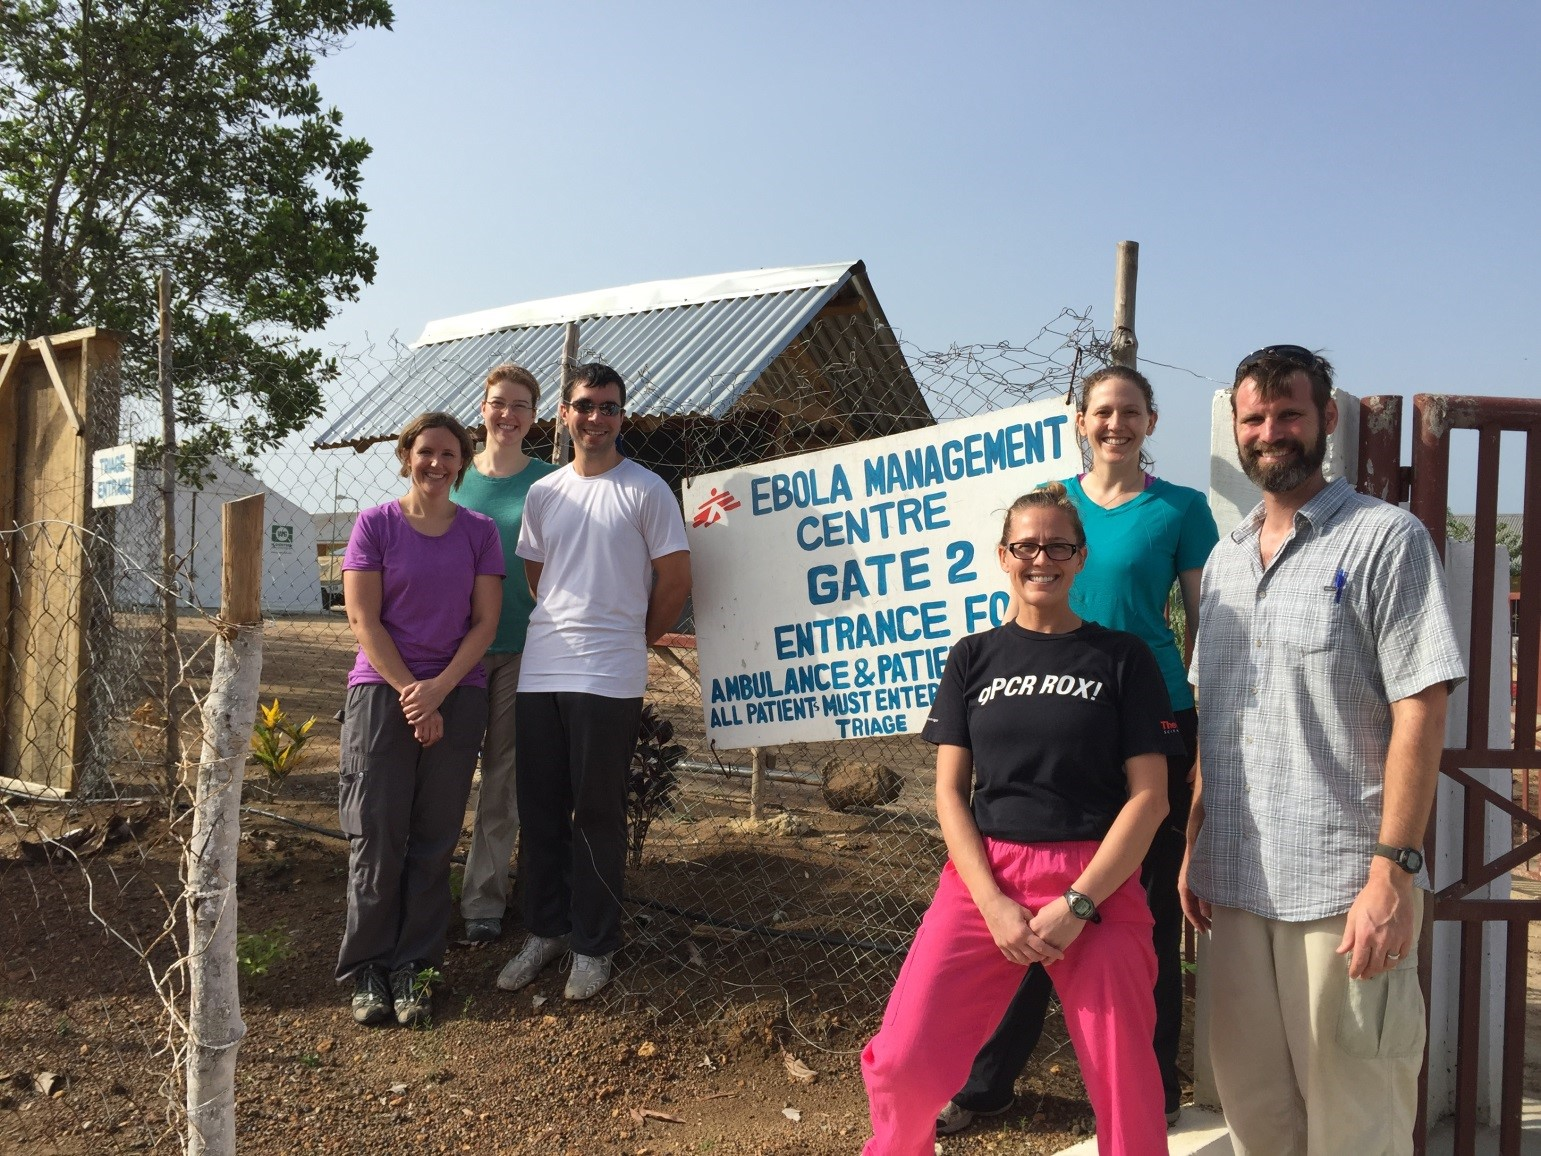 Members of the Bo lab (Team 12) standing in front of the entrance to the Médecins Sans Frontières compound, where the lab is located. (Left to right) Janae Stovall, Laura Rose, Marko Zivcec, Lauren Andersen, Shannon Emery, and Brian Bird